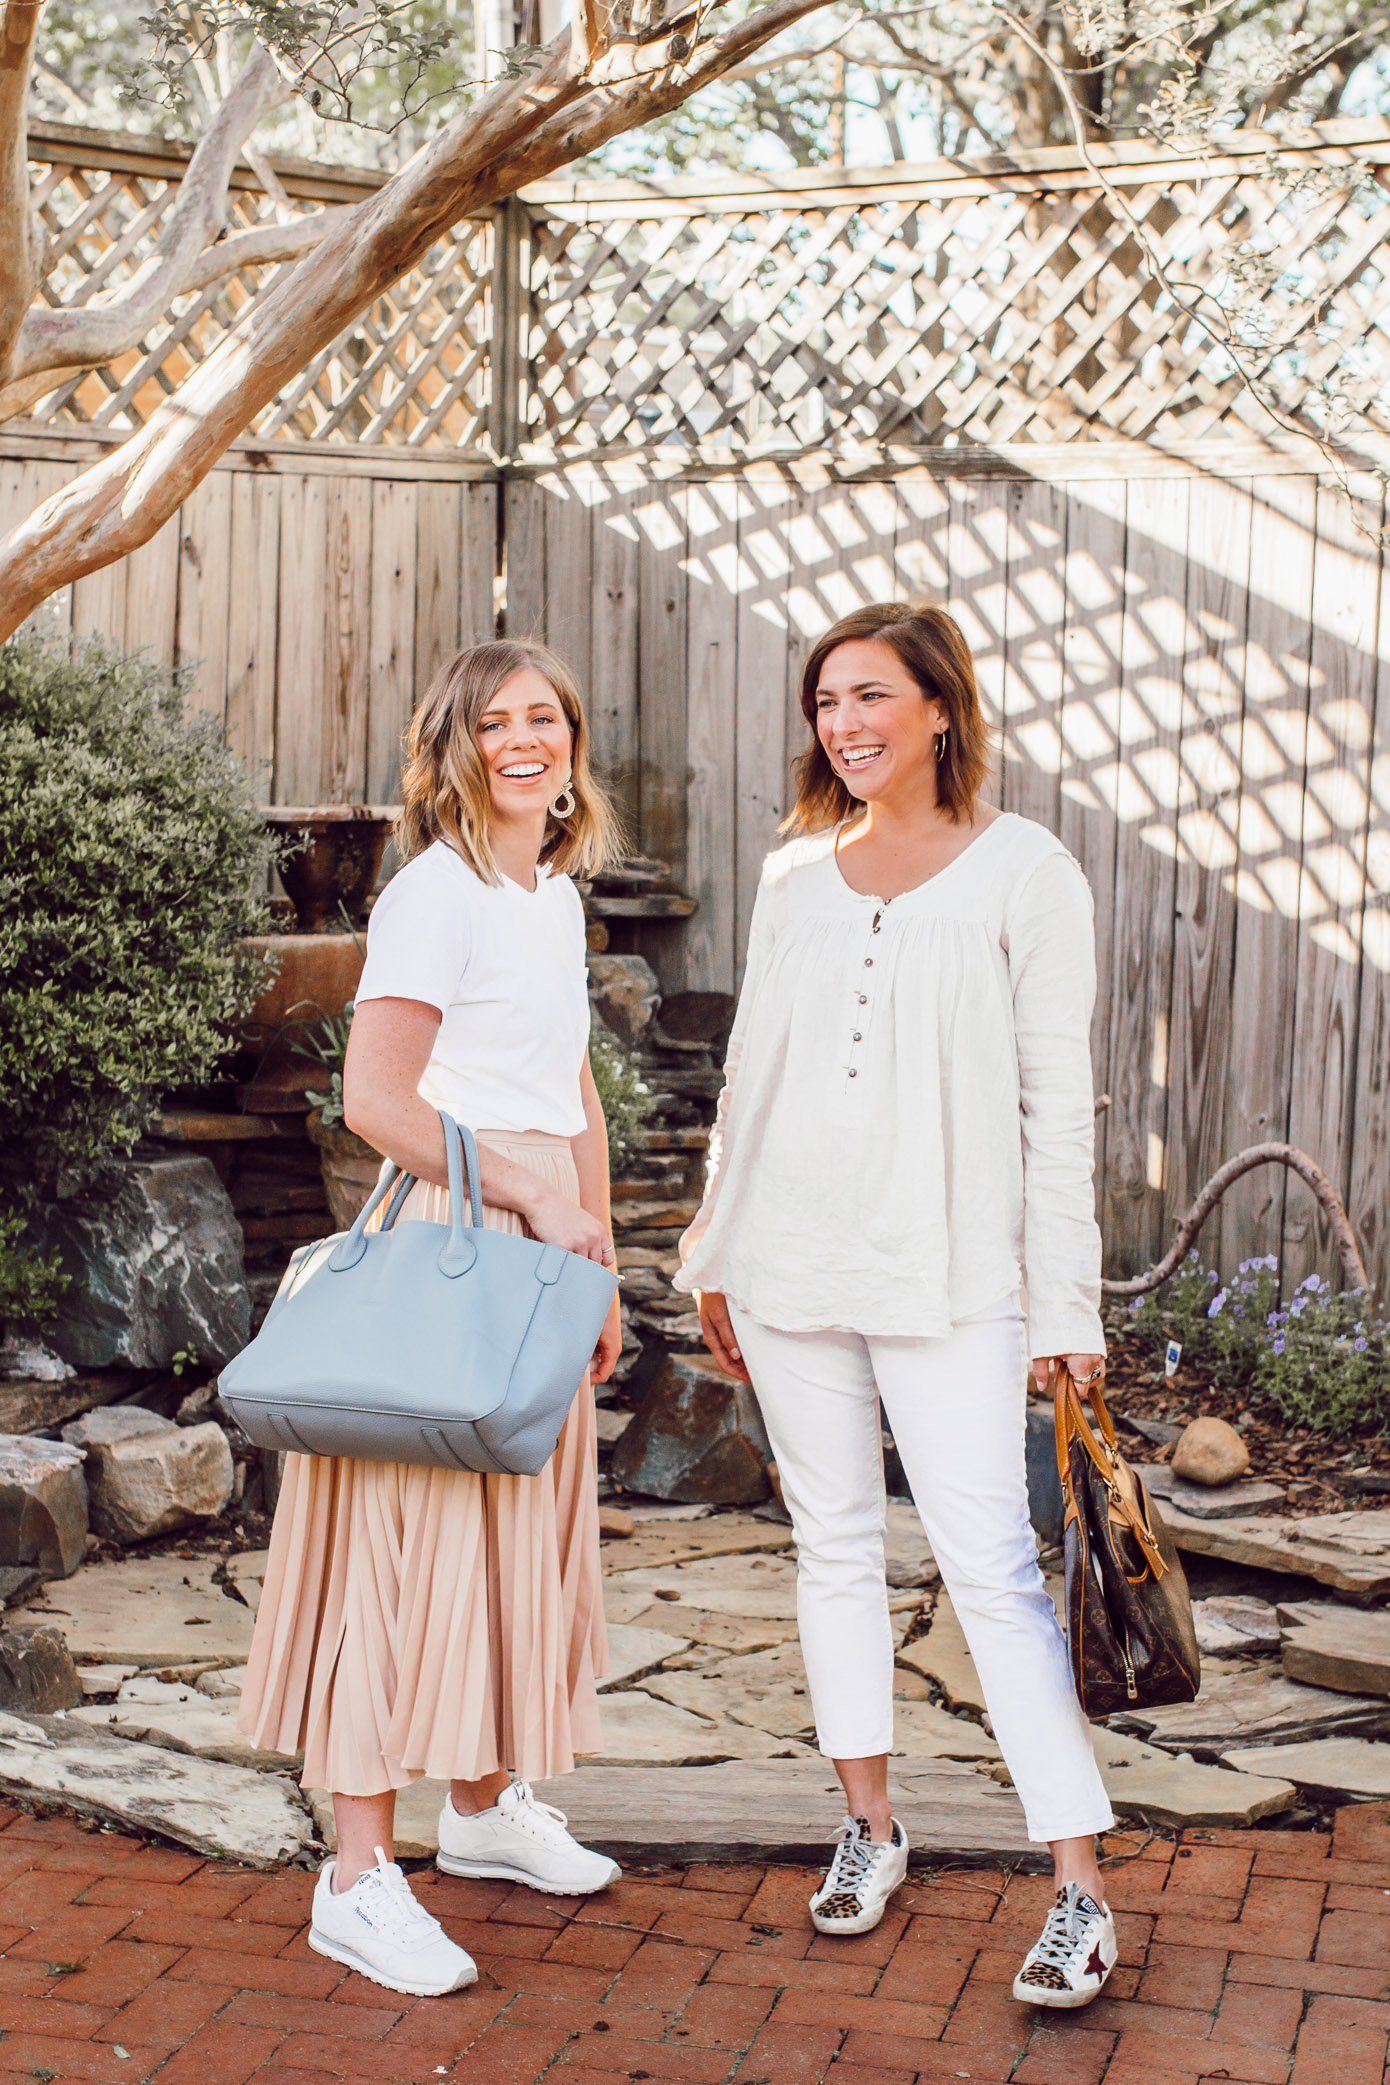 How to Style White and Cream together for Spring, Two Ways | Ft. Everlane, Chicwish, Free People, Gap | Louella Reese